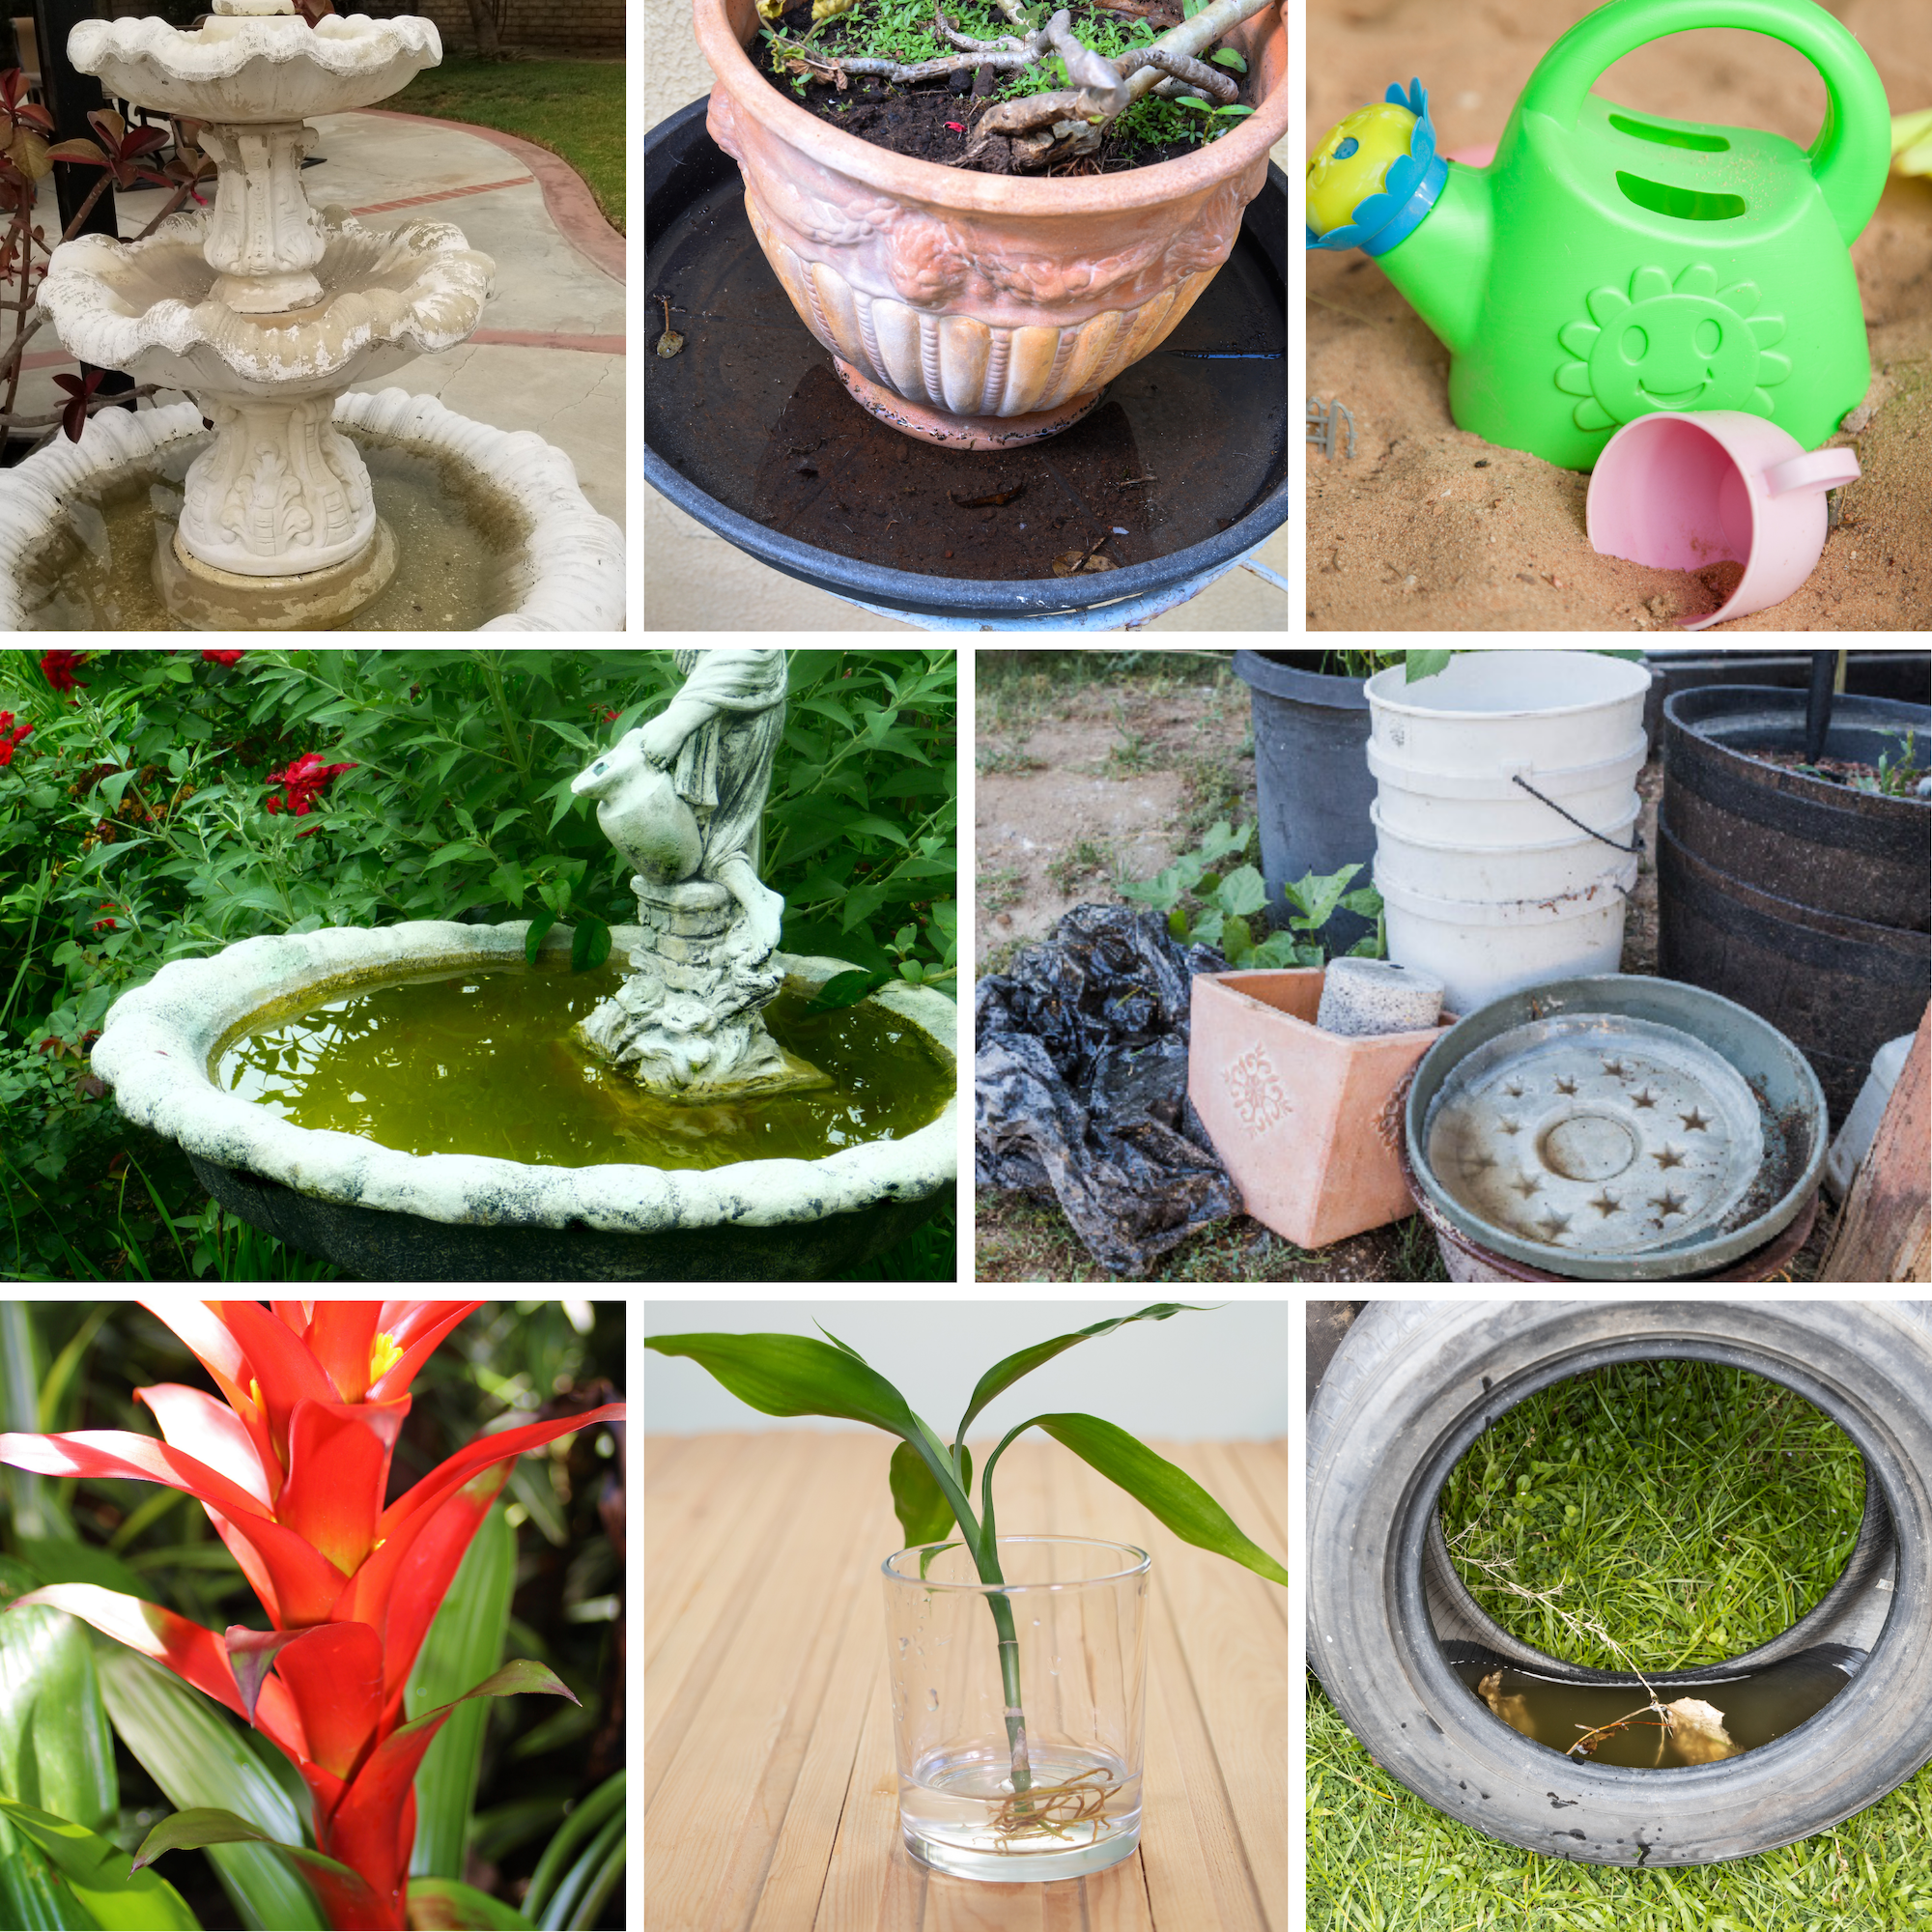 Images of various sources where Aedes mosquitoes thrive: Plant saucers, water fountains, junk, childrens toys, aquatic plants and so on.